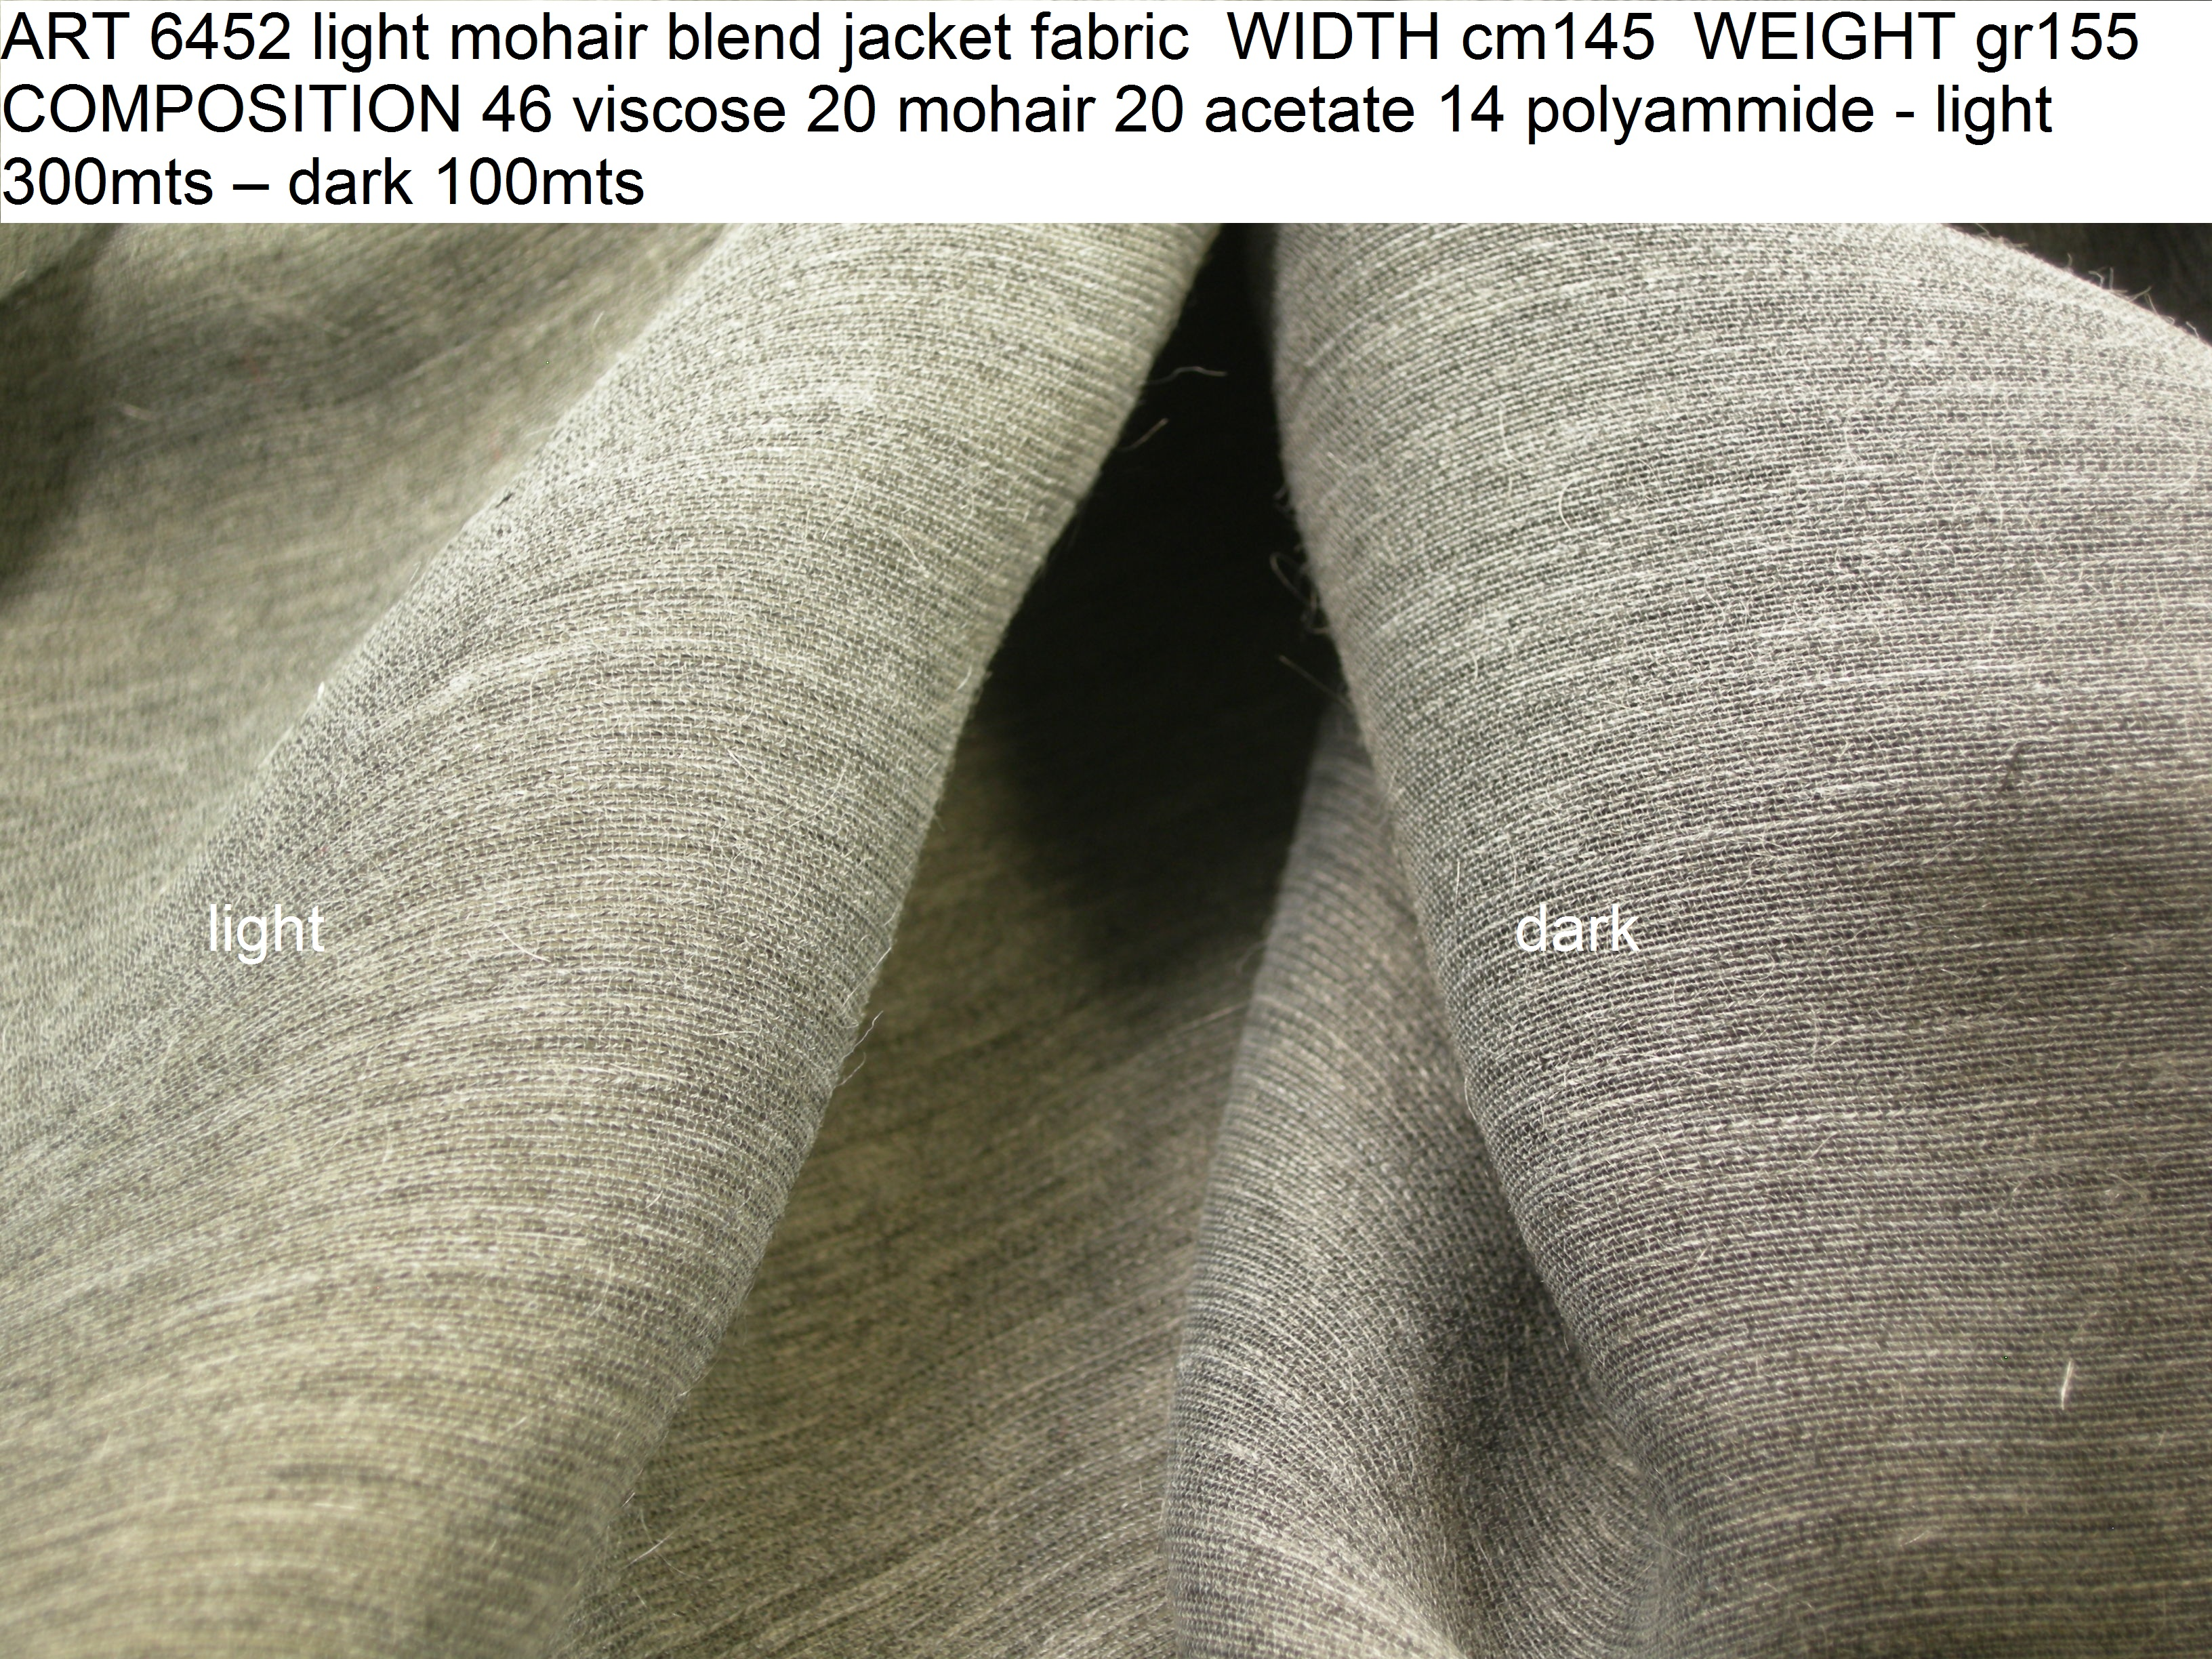 ART 6452 light mohair blend jacket fabric WIDTH cm145 WEIGHT gr155 COMPOSITION 46 viscose 20 mohair 20 acetate 14 polyammide - light 300mts – dark 100mts